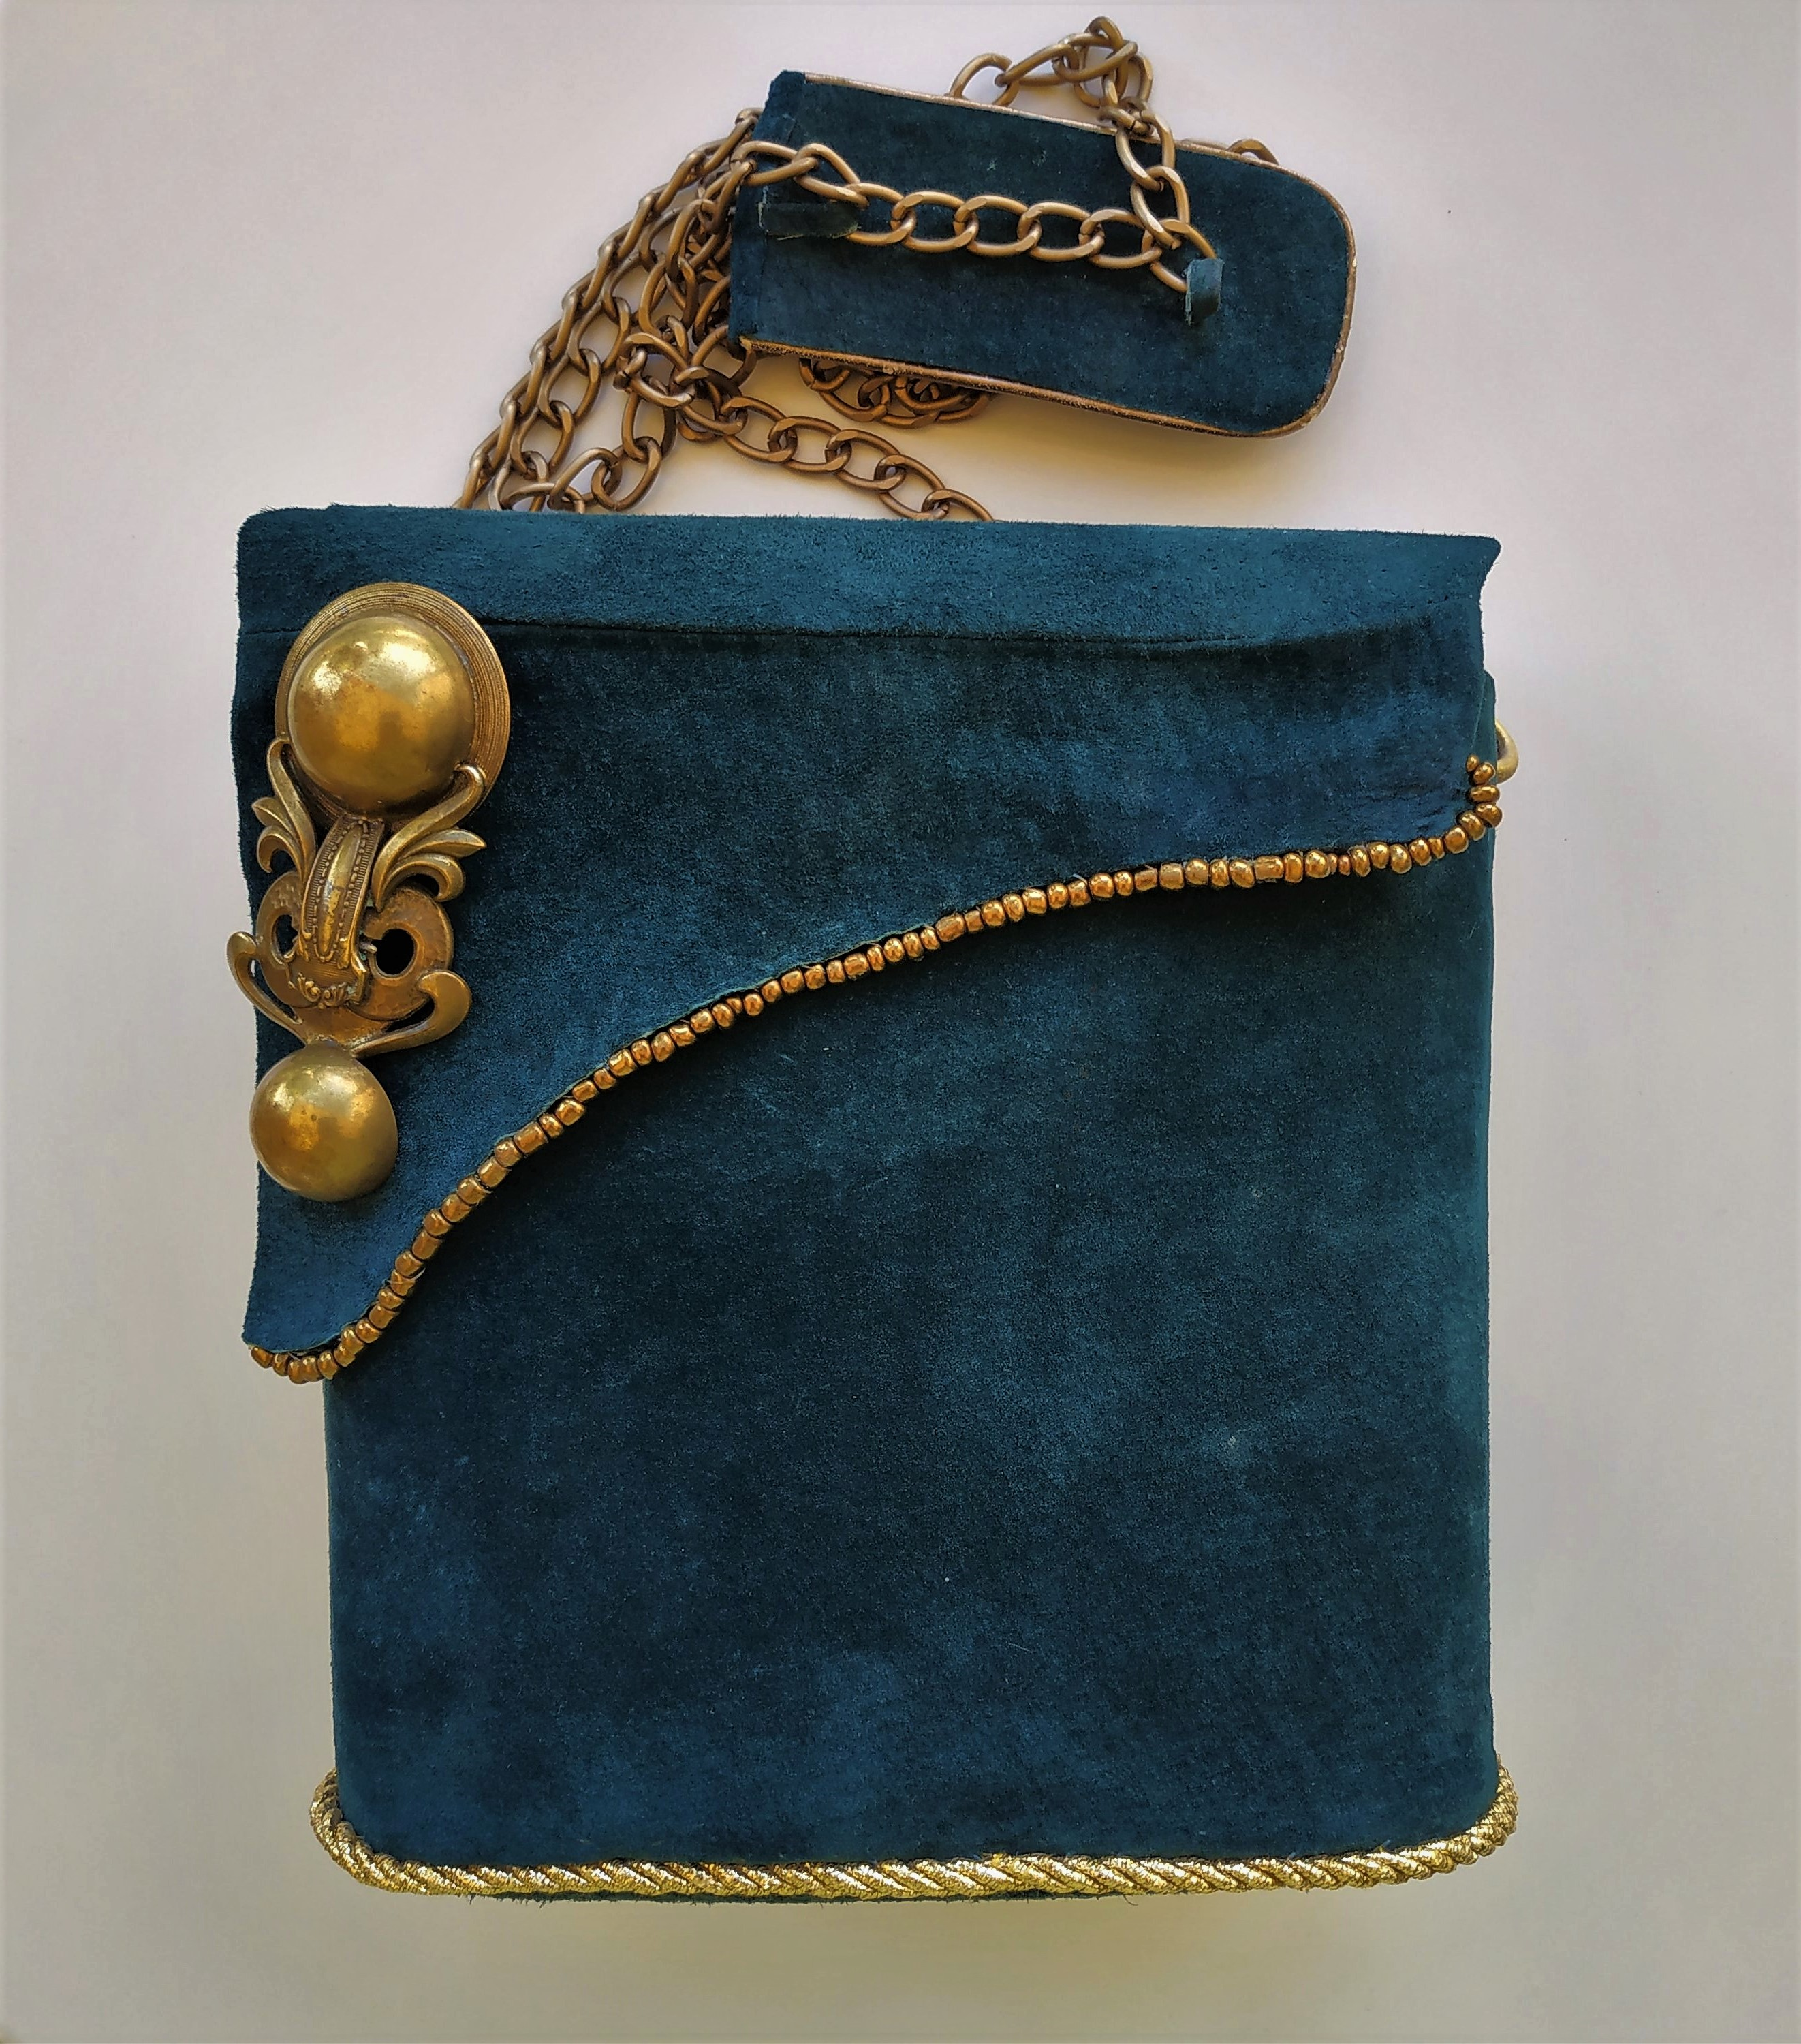 Suede box-bag - Original product for women